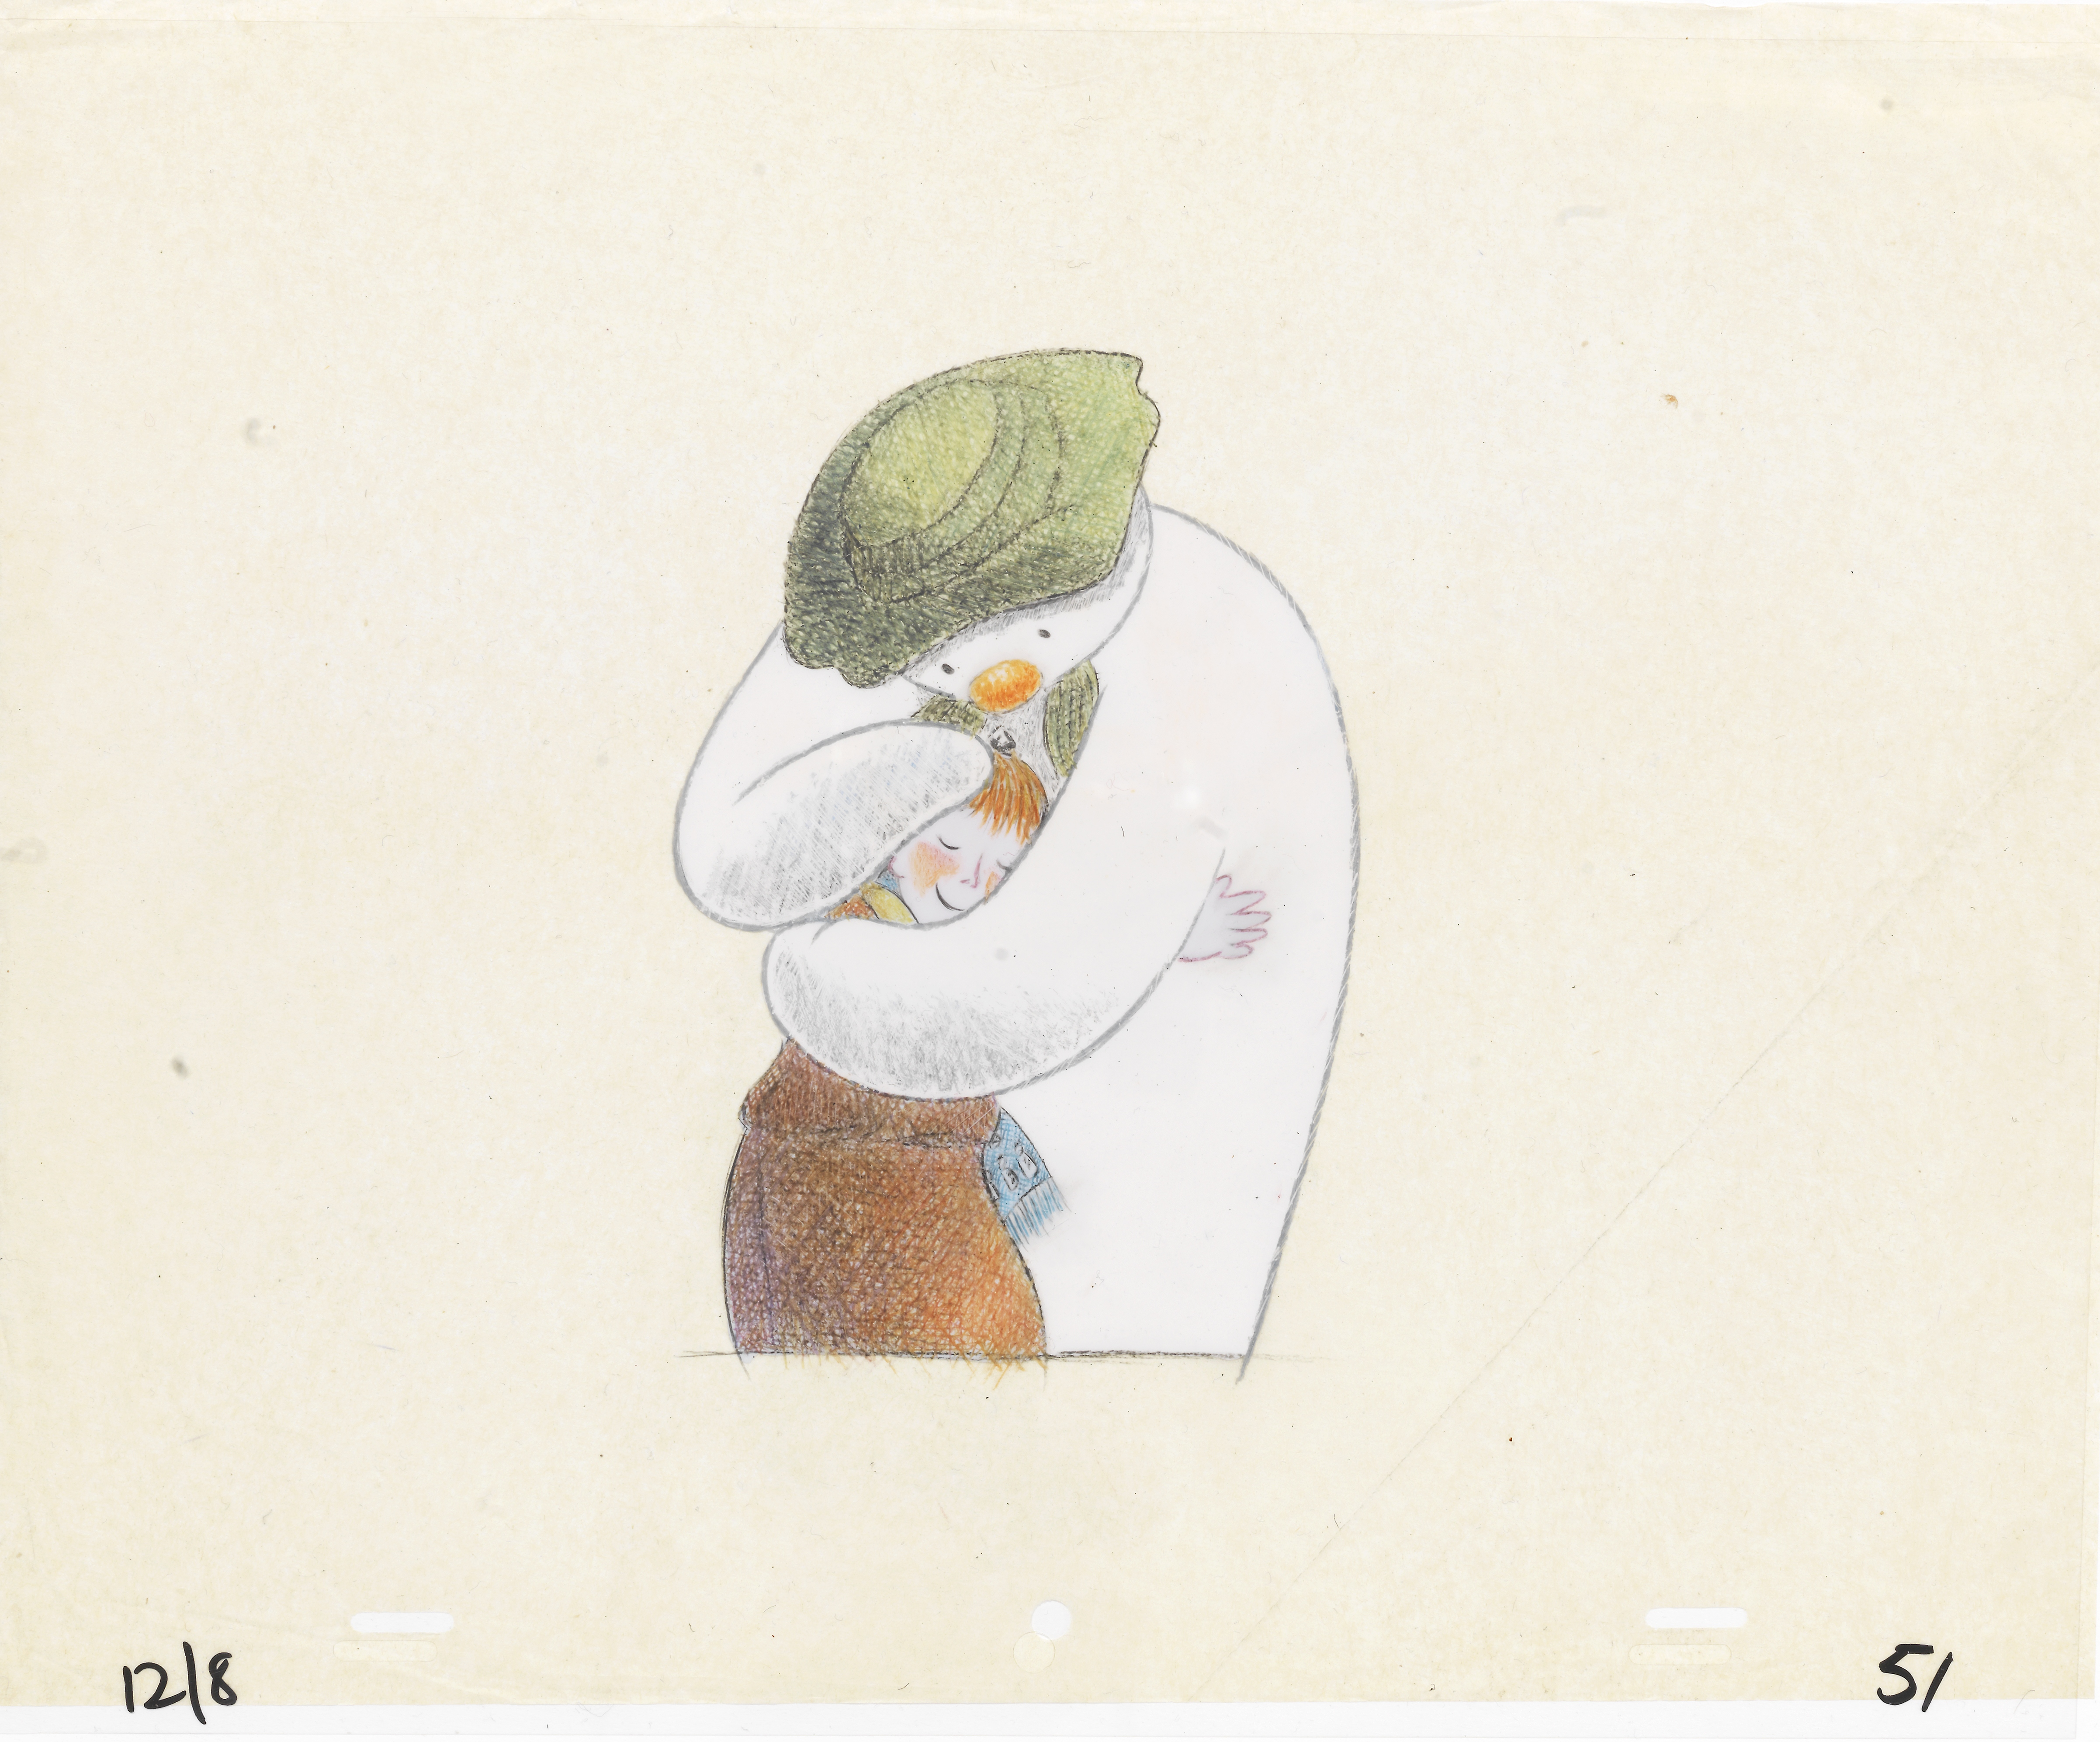 Lot 47 - The Snowman: An original animation cel of the Snowman and James, 1982,